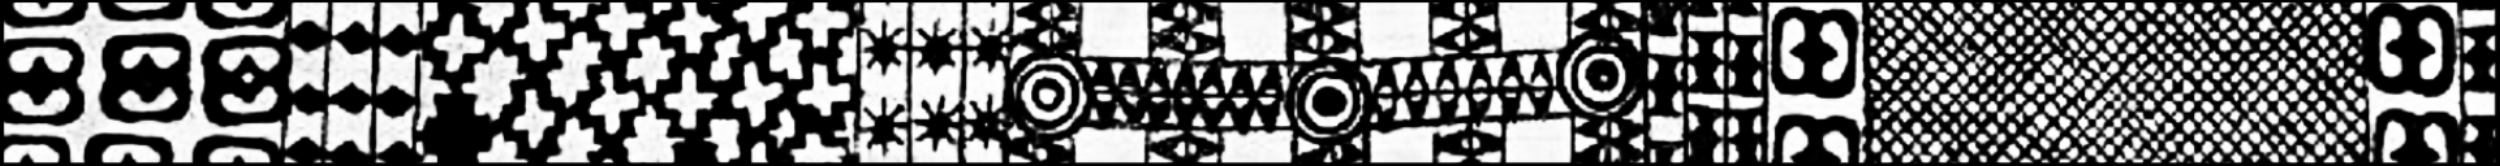 adinkra are visual symbols, originally created by the akan of ghana and the gyaman of cote d'ivoire in west africa, that represent concepts or original thoughts